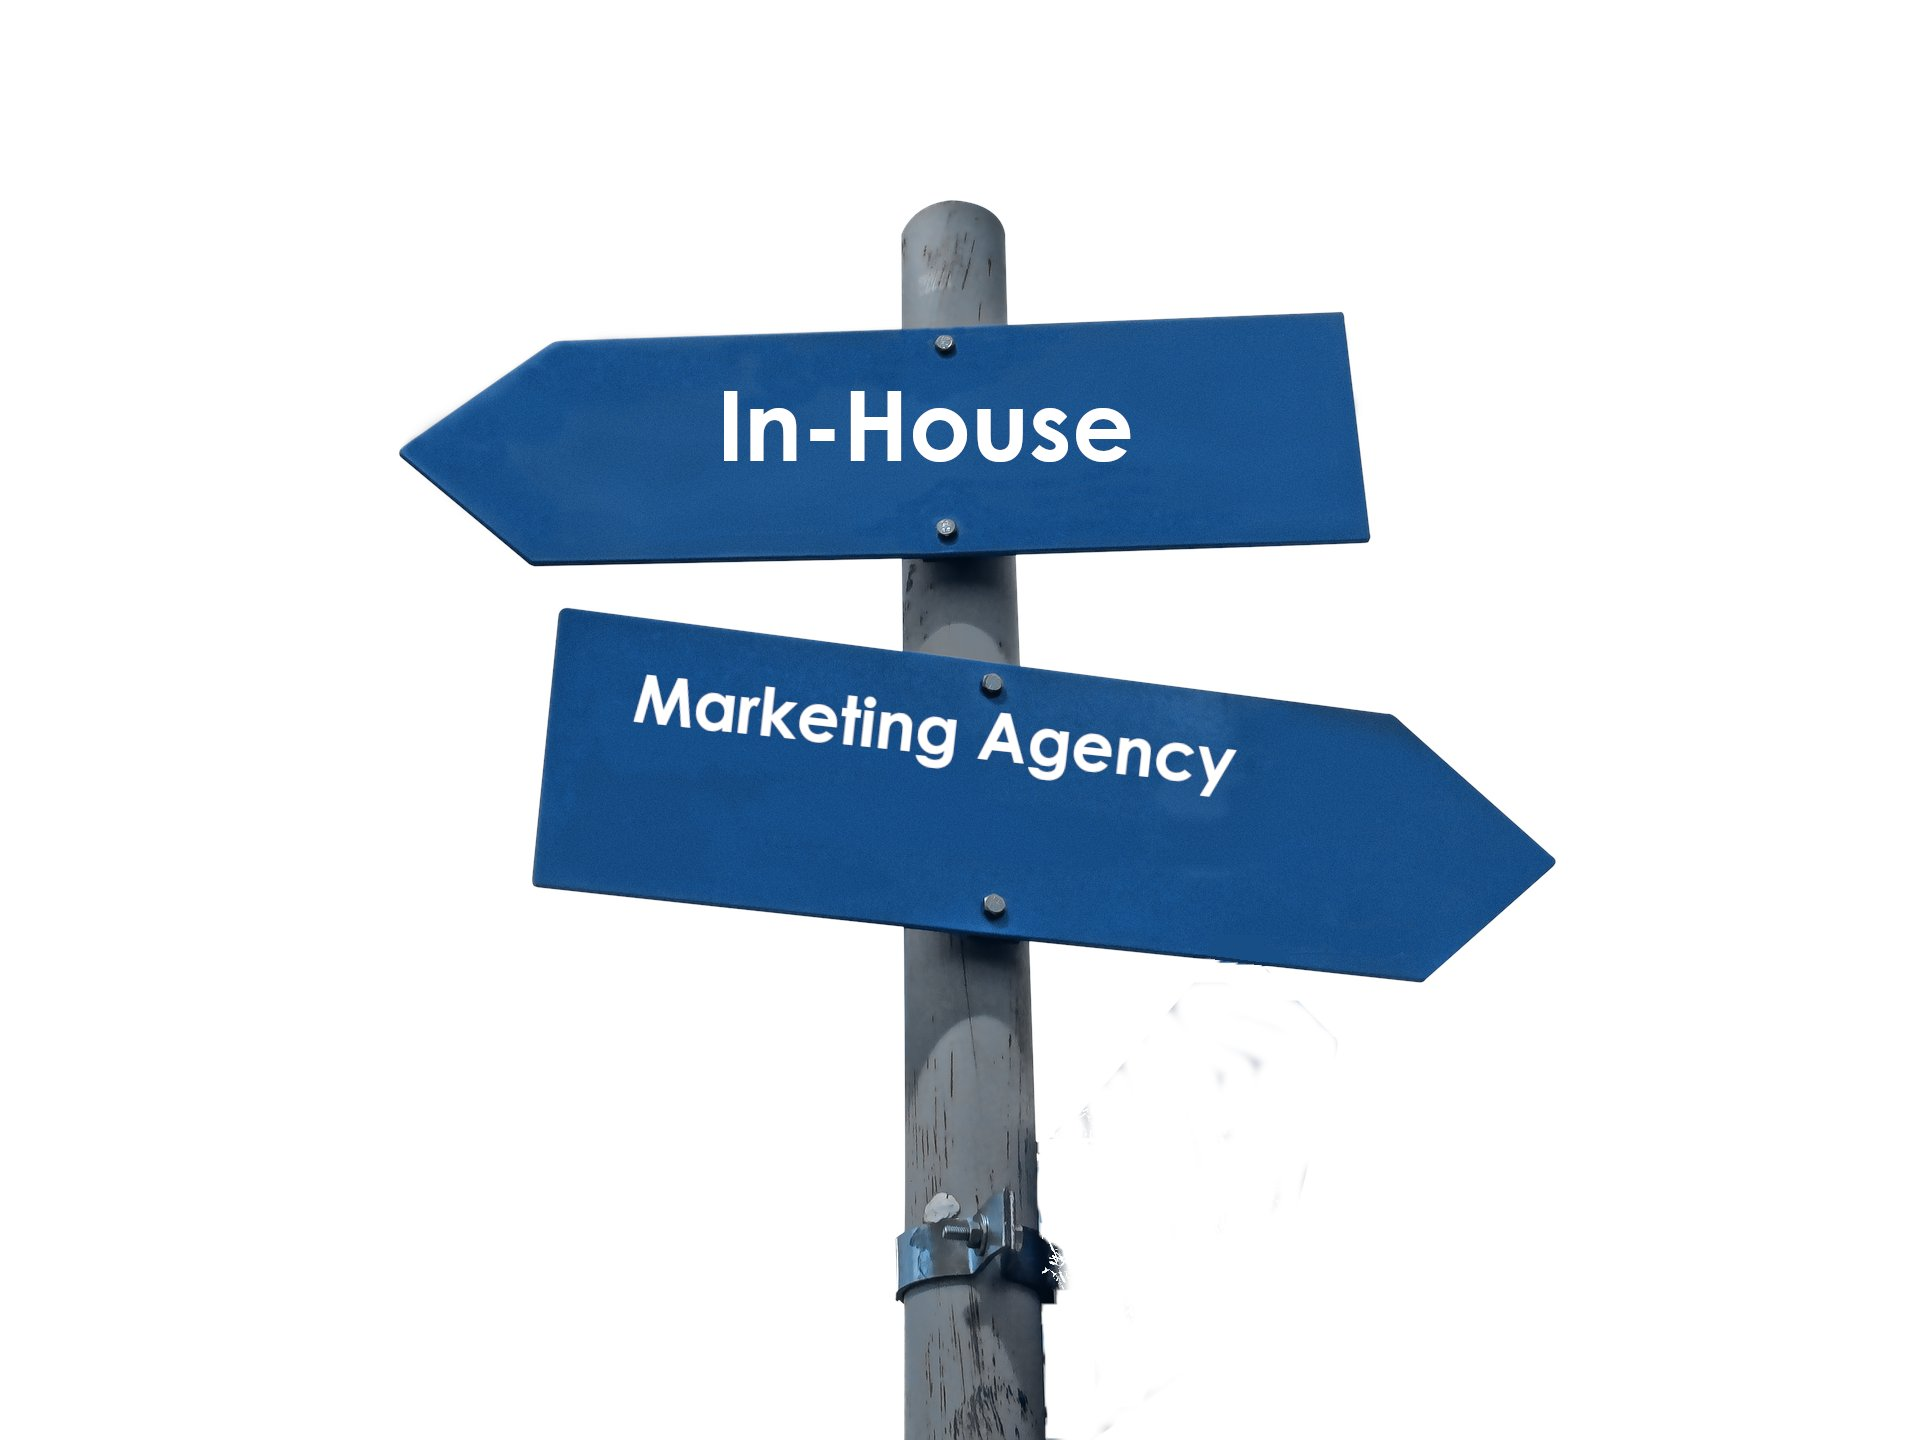 Marketing Agency vs. In-house